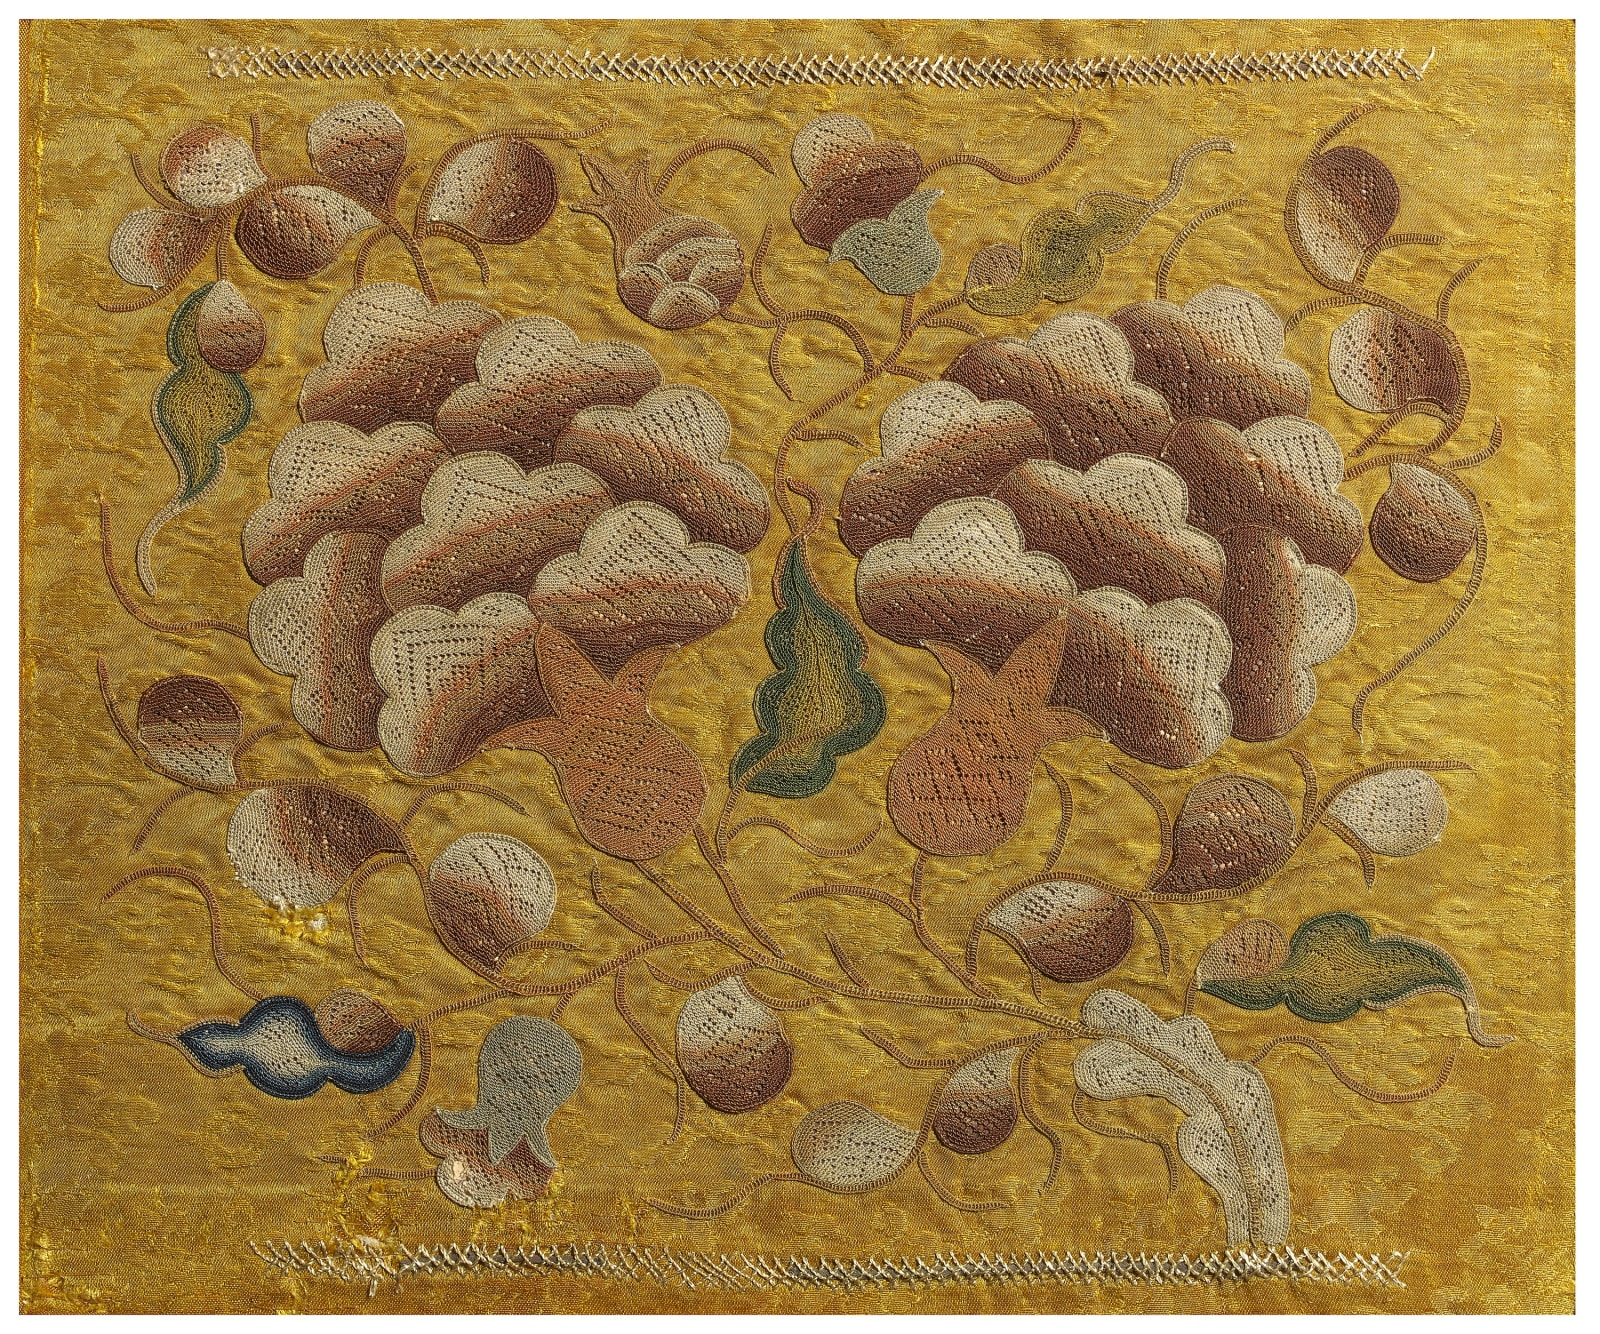 Rare needleloop embroidery with tree peonies, Chinese, Yuan dynasty (1279-1368)